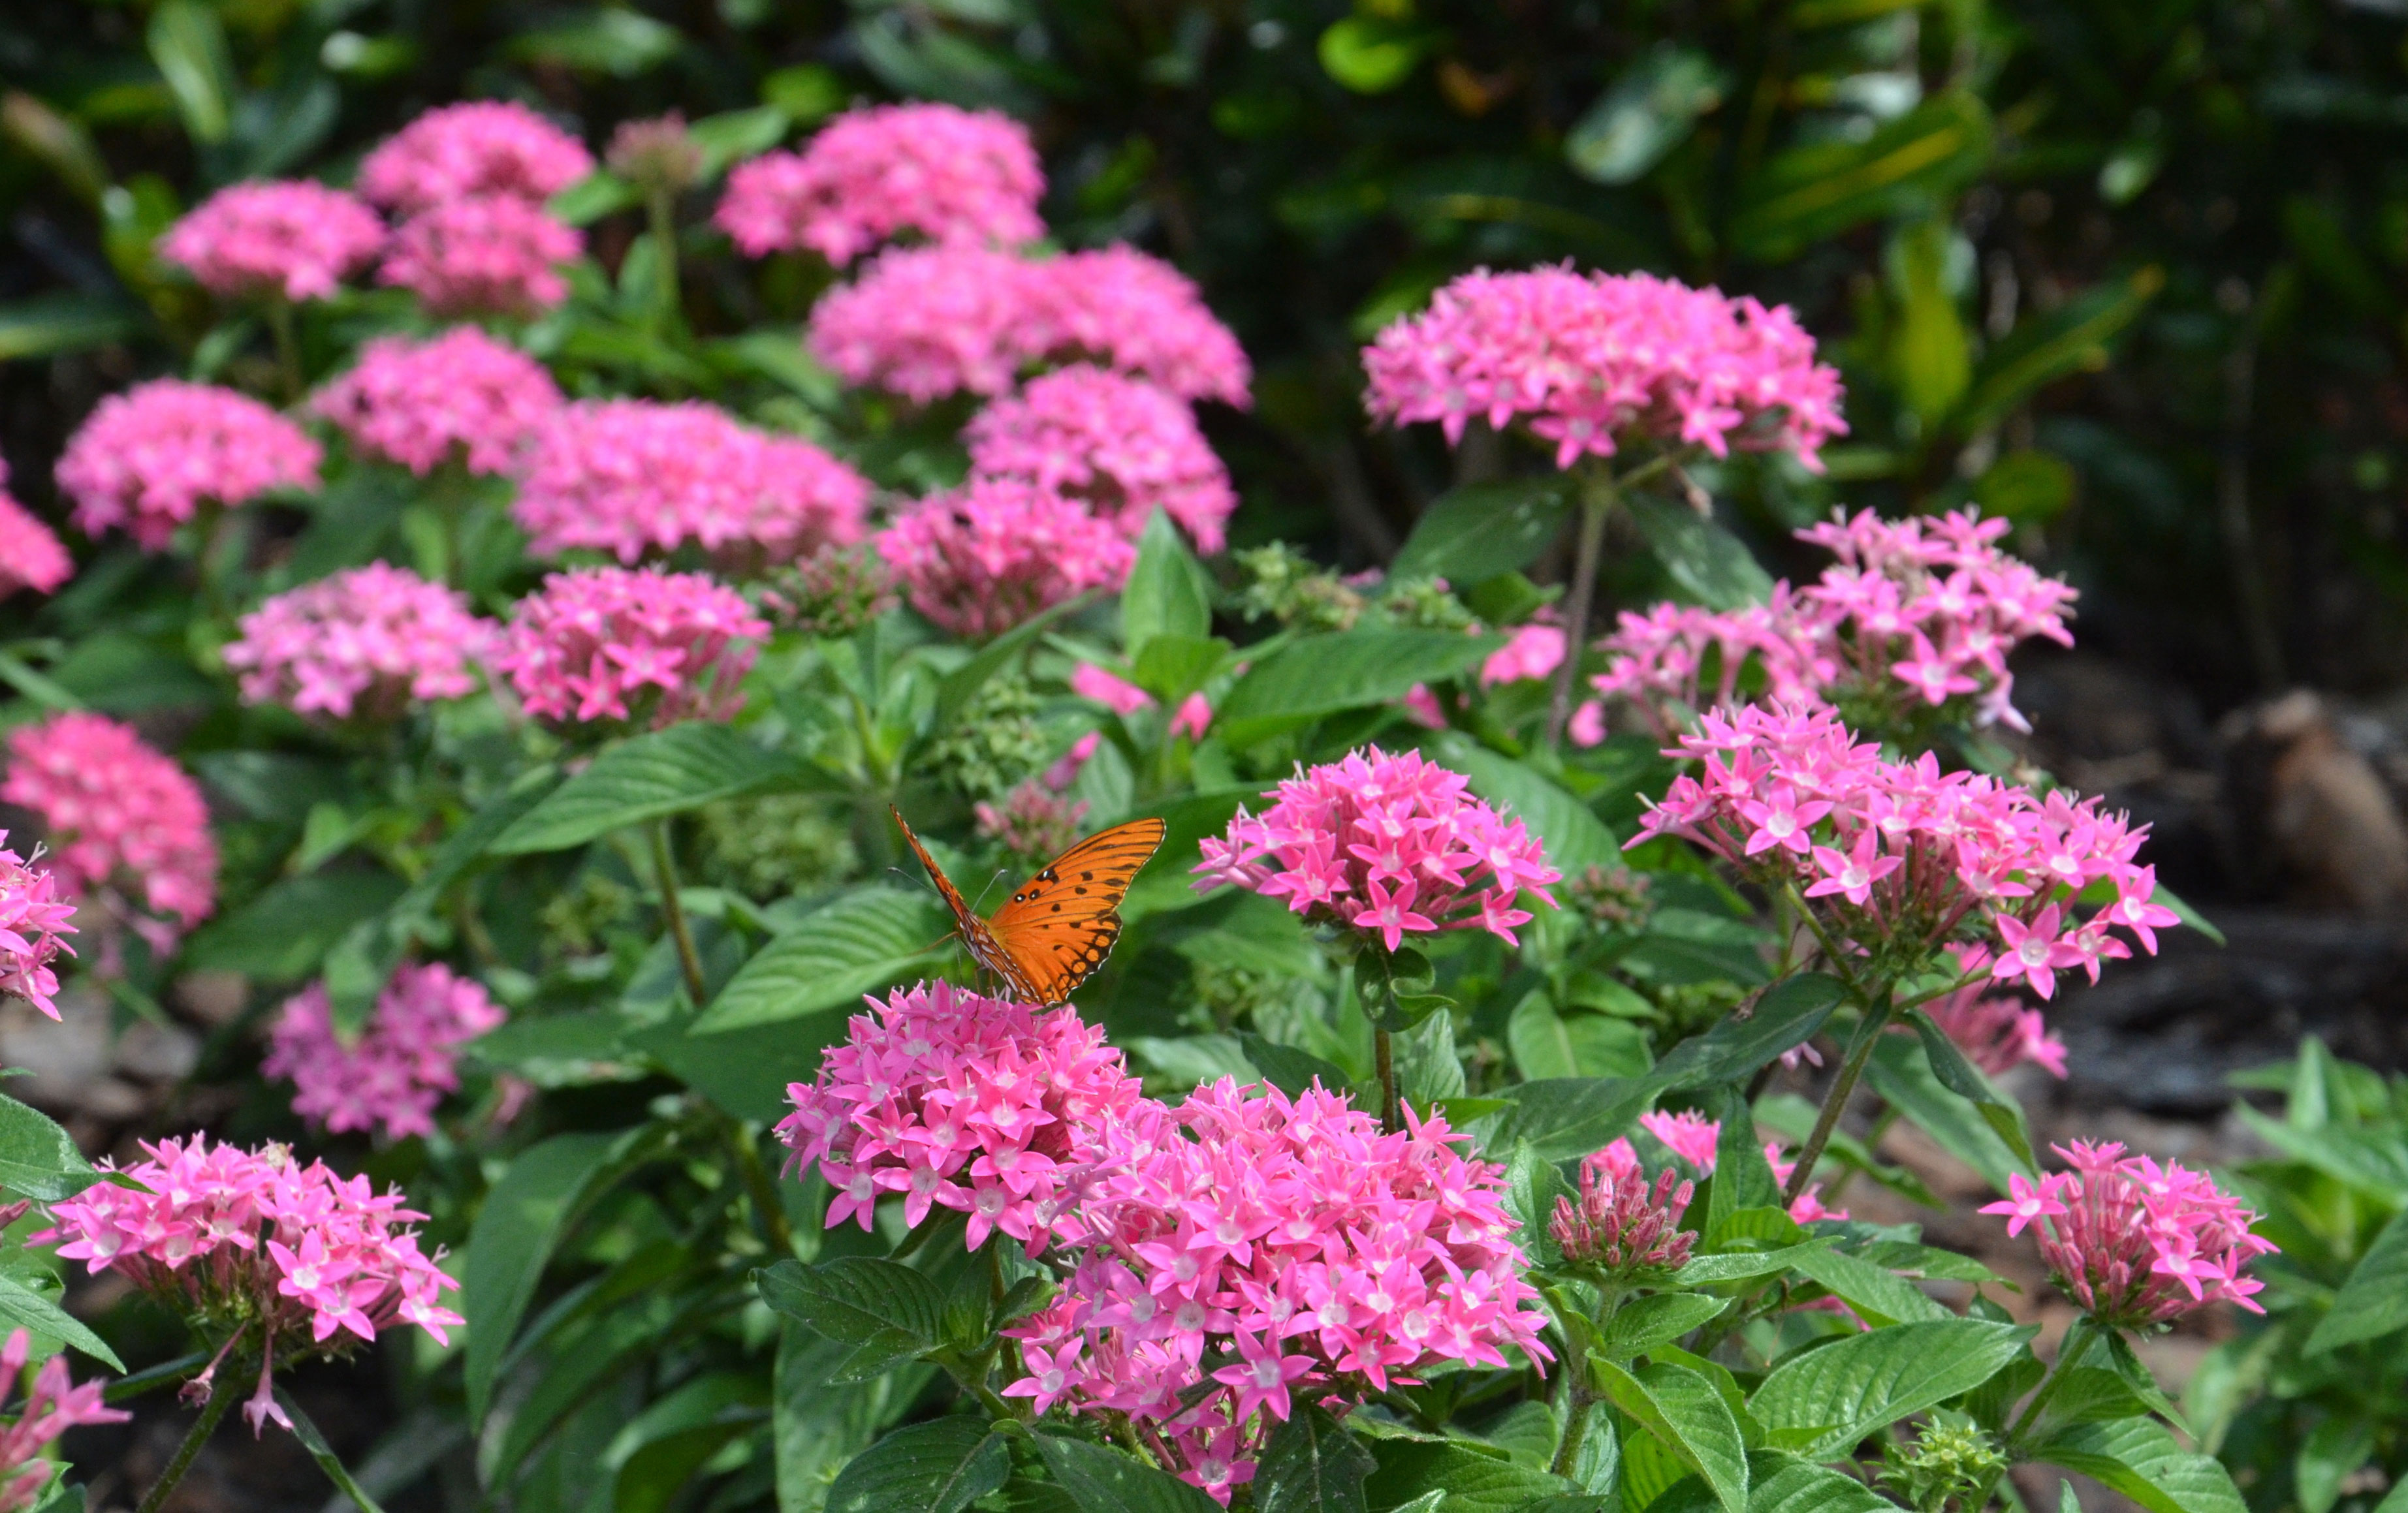 Multimedia gallery butterfly on flowers nsf national science a butterfly on flowers at the university of south florida campus izmirmasajfo